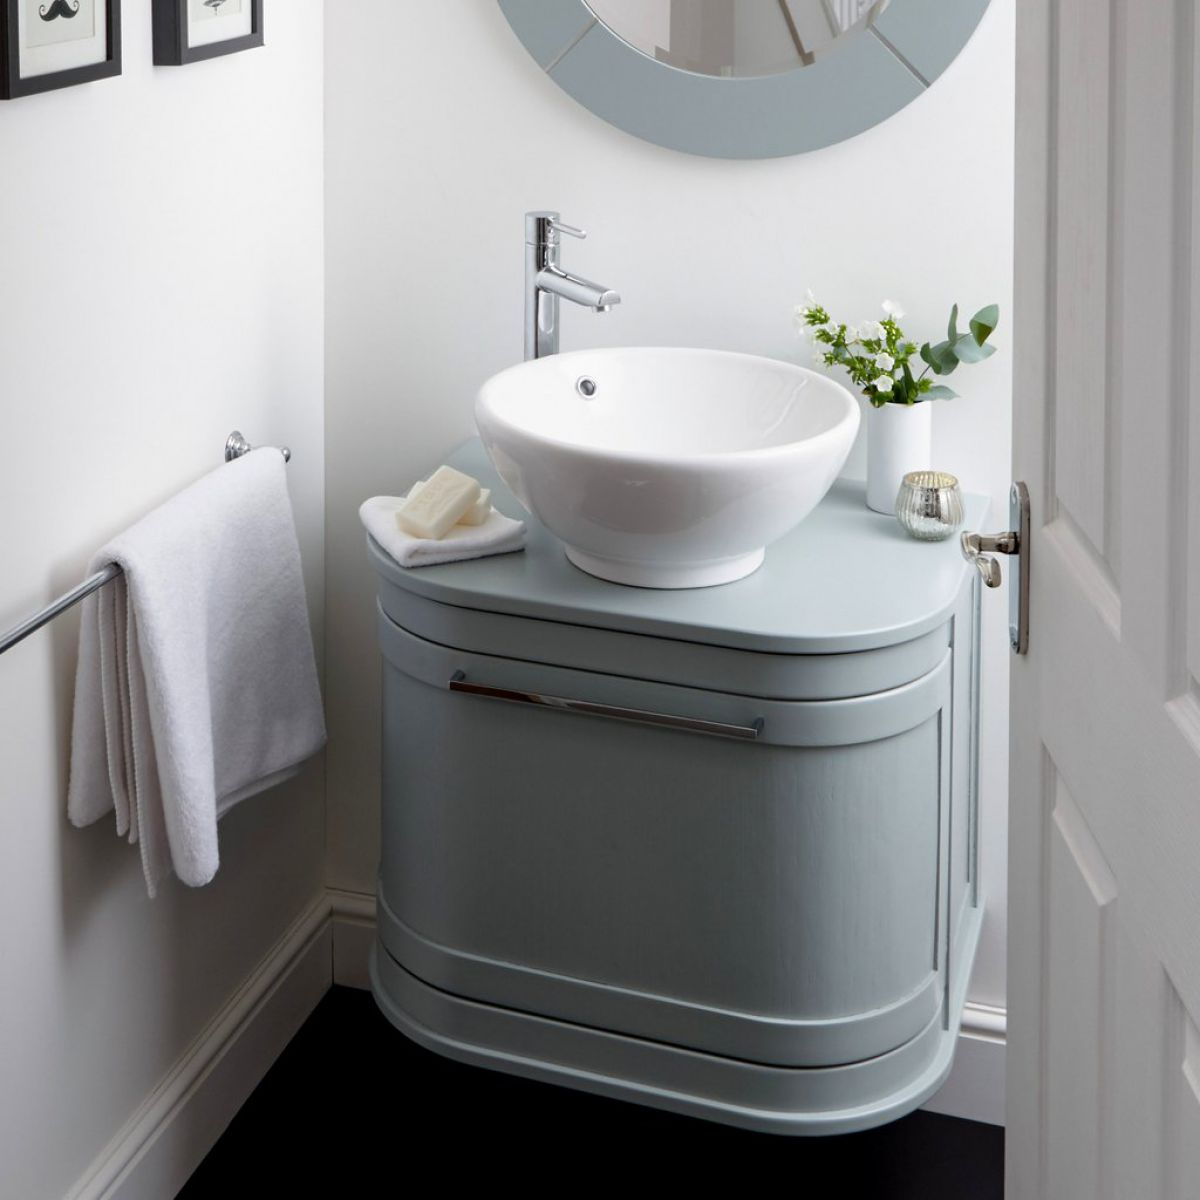 Imperial Carlyon Roseland 2 Drawer Vanity Unit with Vessel Bowl